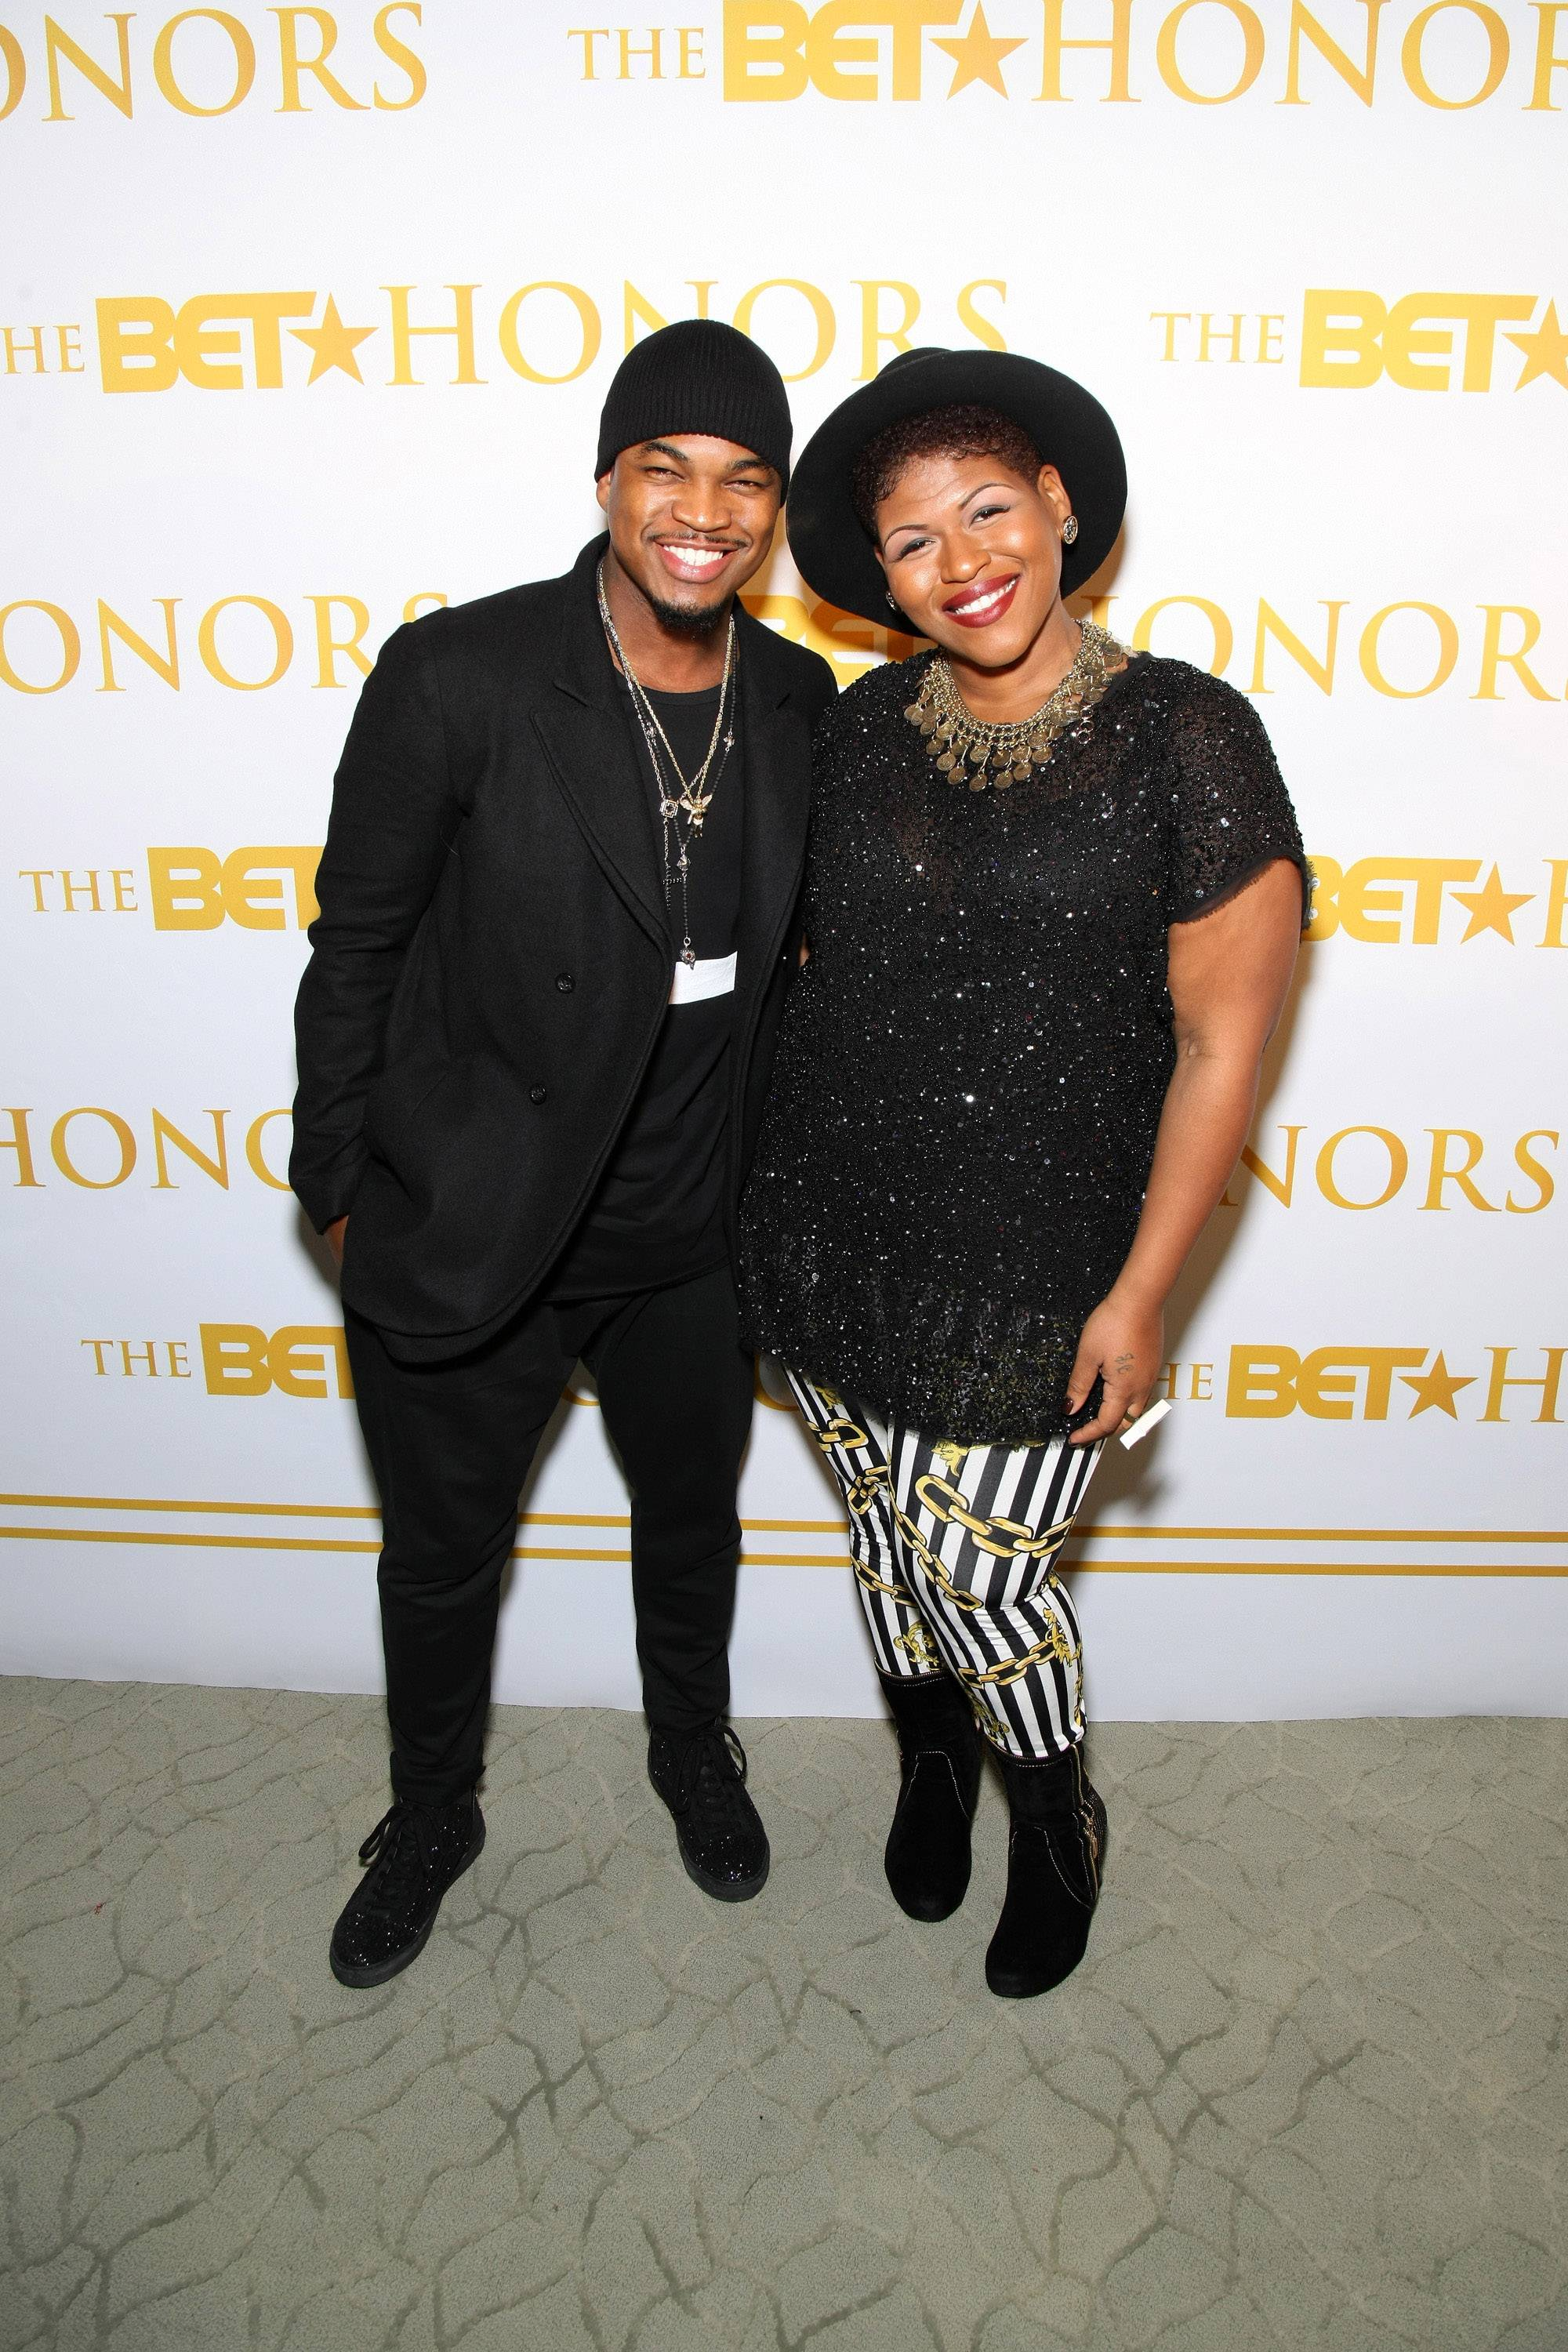 Golden Pens - Ne-Yo and Stacey Barthe are revered for their songwriting and last night they took a break from stroking their musical pens to strike a pose on the red carpet.(Photo: Bennett Raglin/BET/Getty Images for BET)